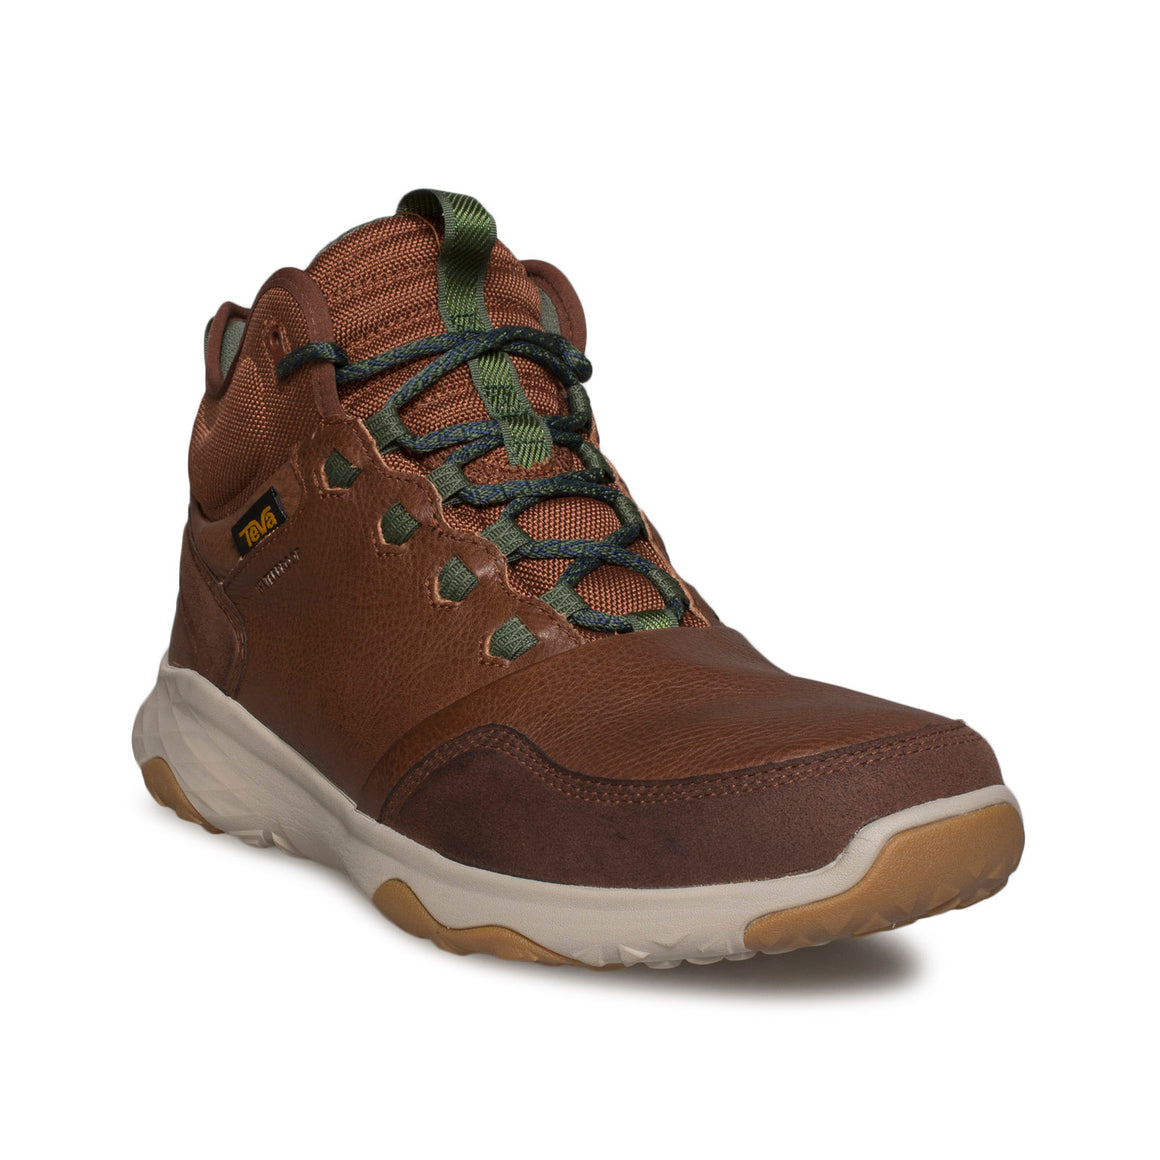 Teva Arrowood 2 Mid WP Tortoise Shell Boots - Men's